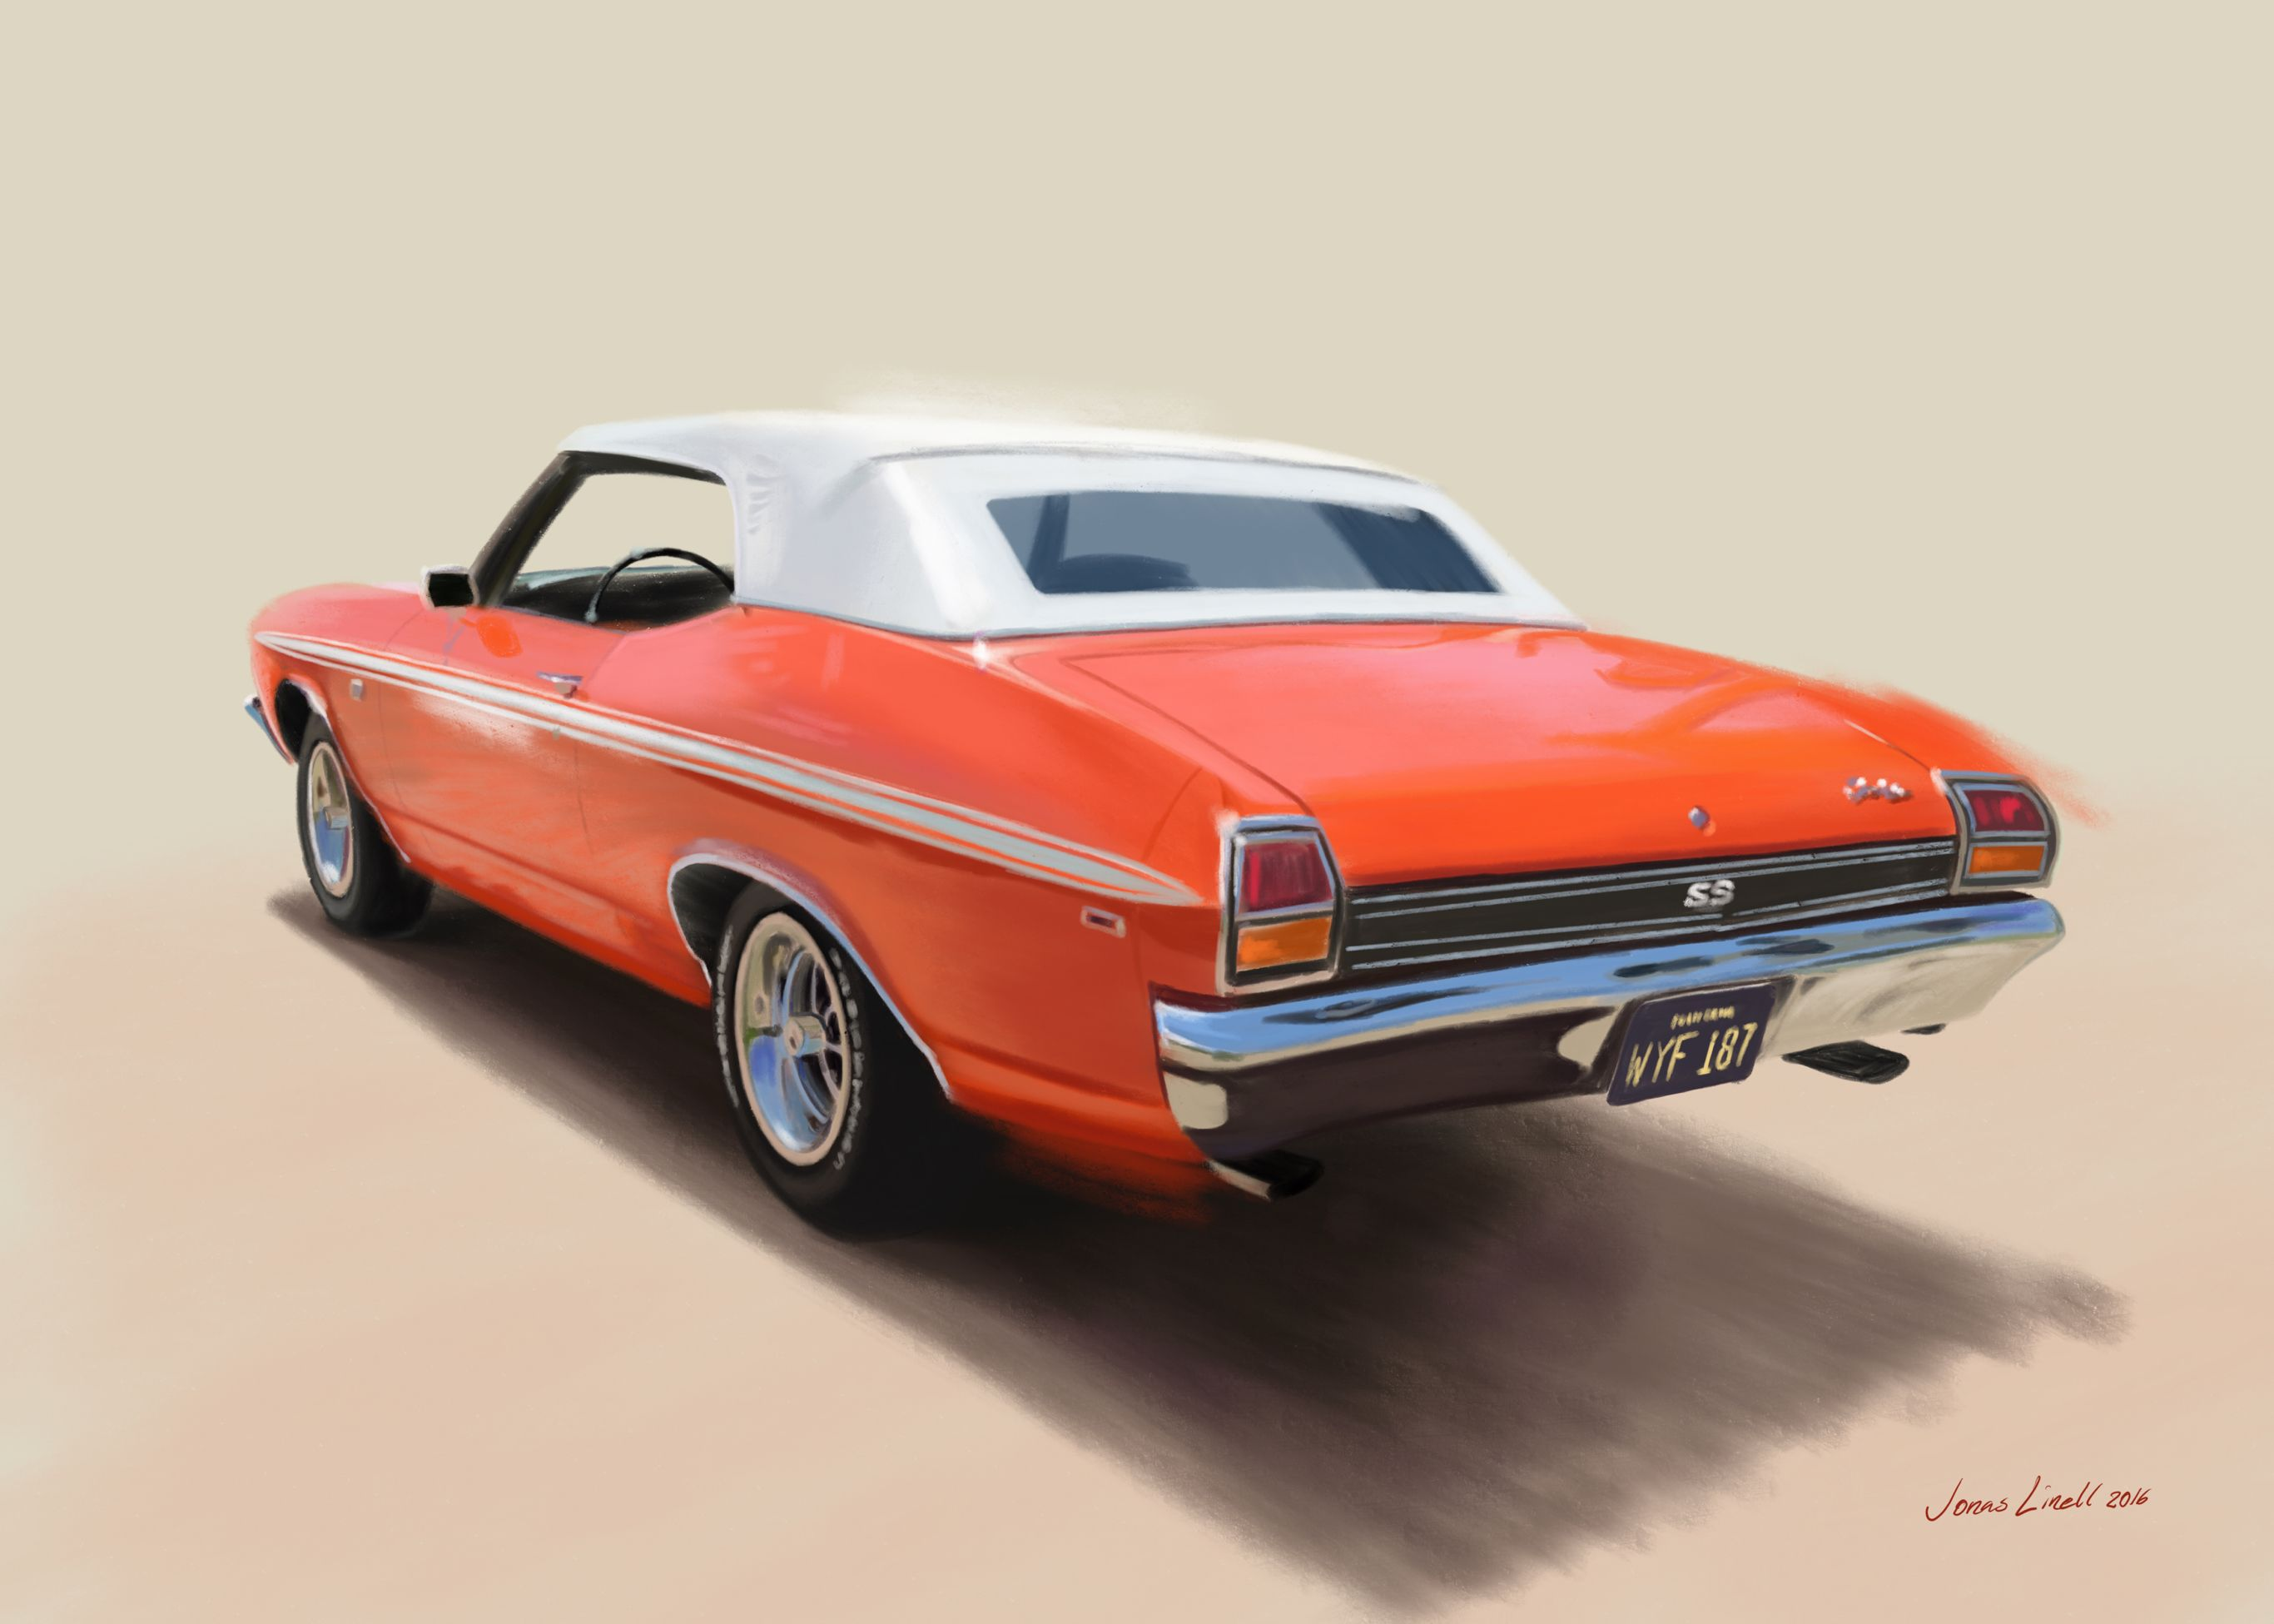 Chevelle SS. Americana that doesn't fade. Painting by Jonas Linell 2016. #chevelle #chevy #chevrolet #american #car #art #v8 #classic #musclecar #carposter #illustration